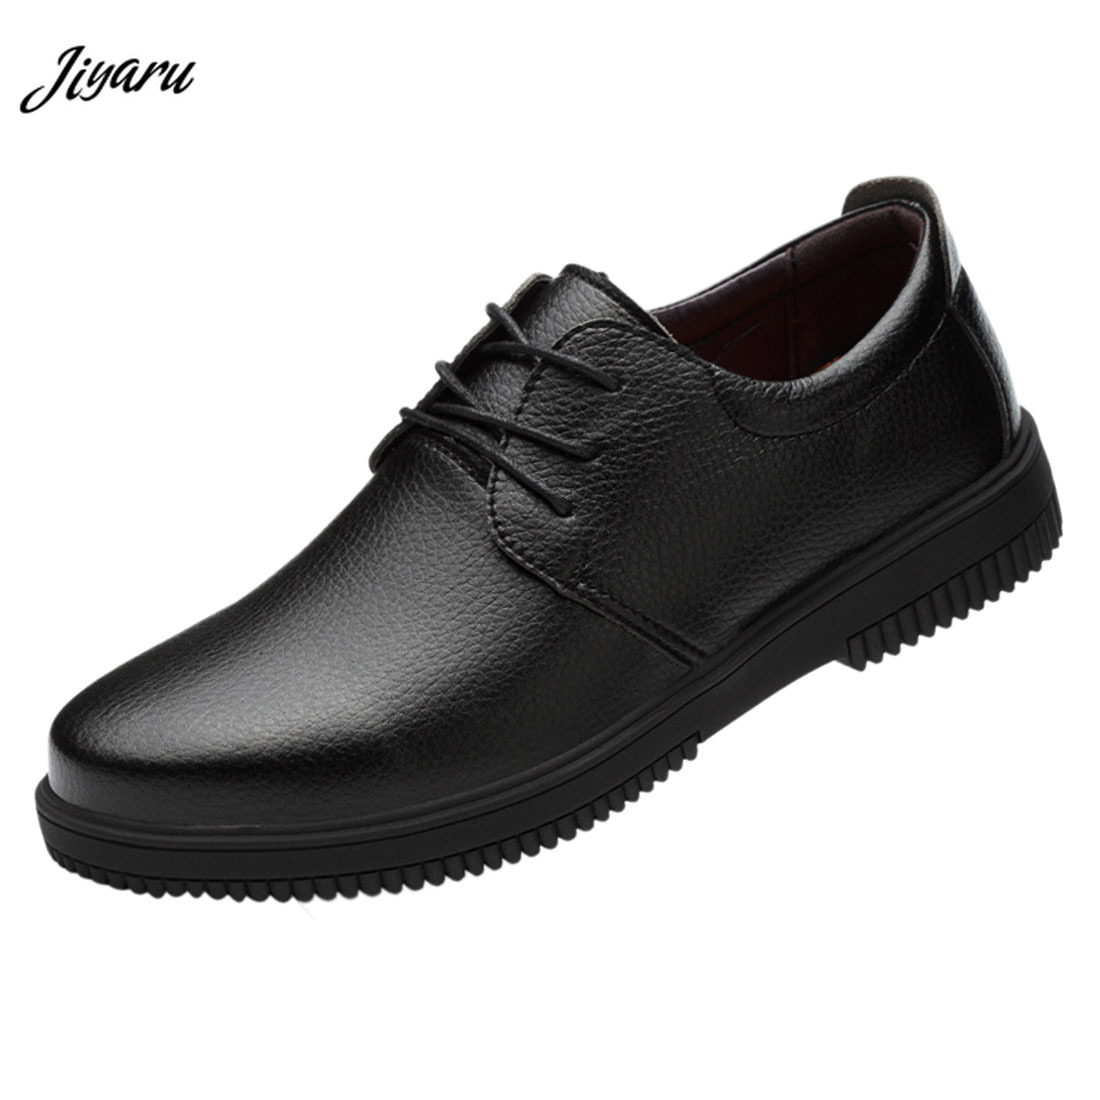 2018 New Arrival Professional Chef Work Anti Slip Shoes Men Restaurant Catering Kitchen Work Shoes Non Slip Anti Oil Chef Shoes